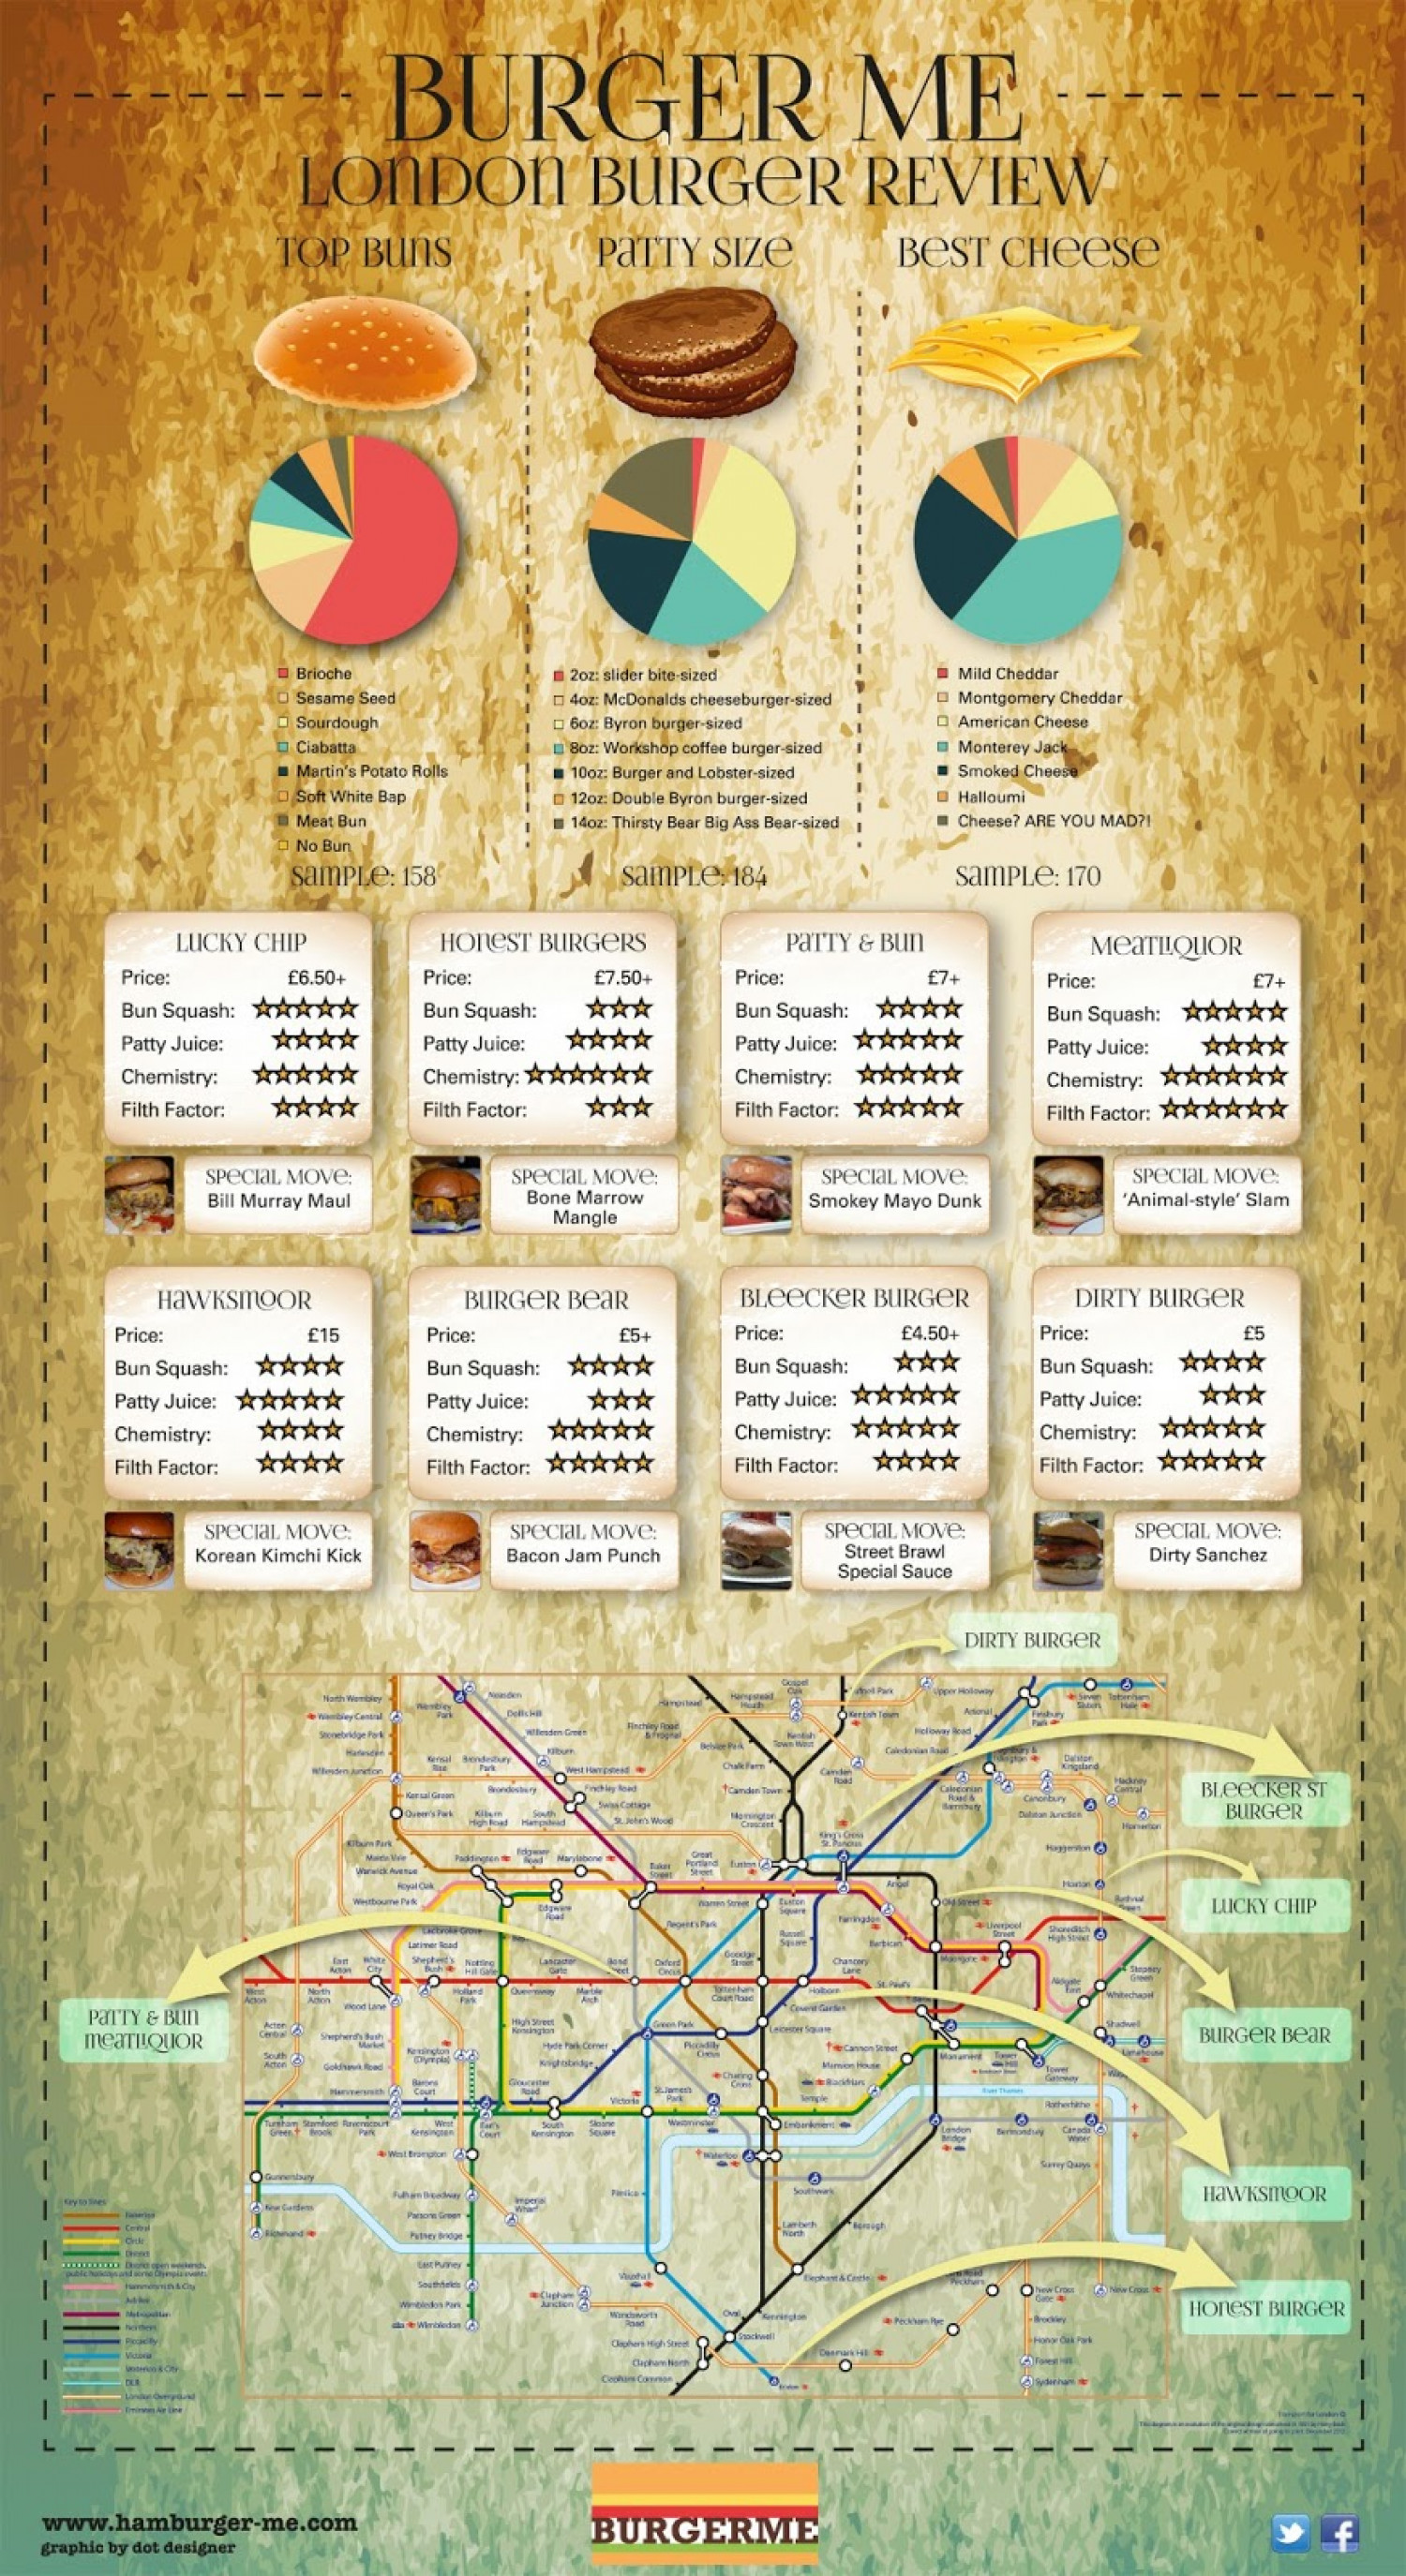 London Burger Review 2013 Infographic